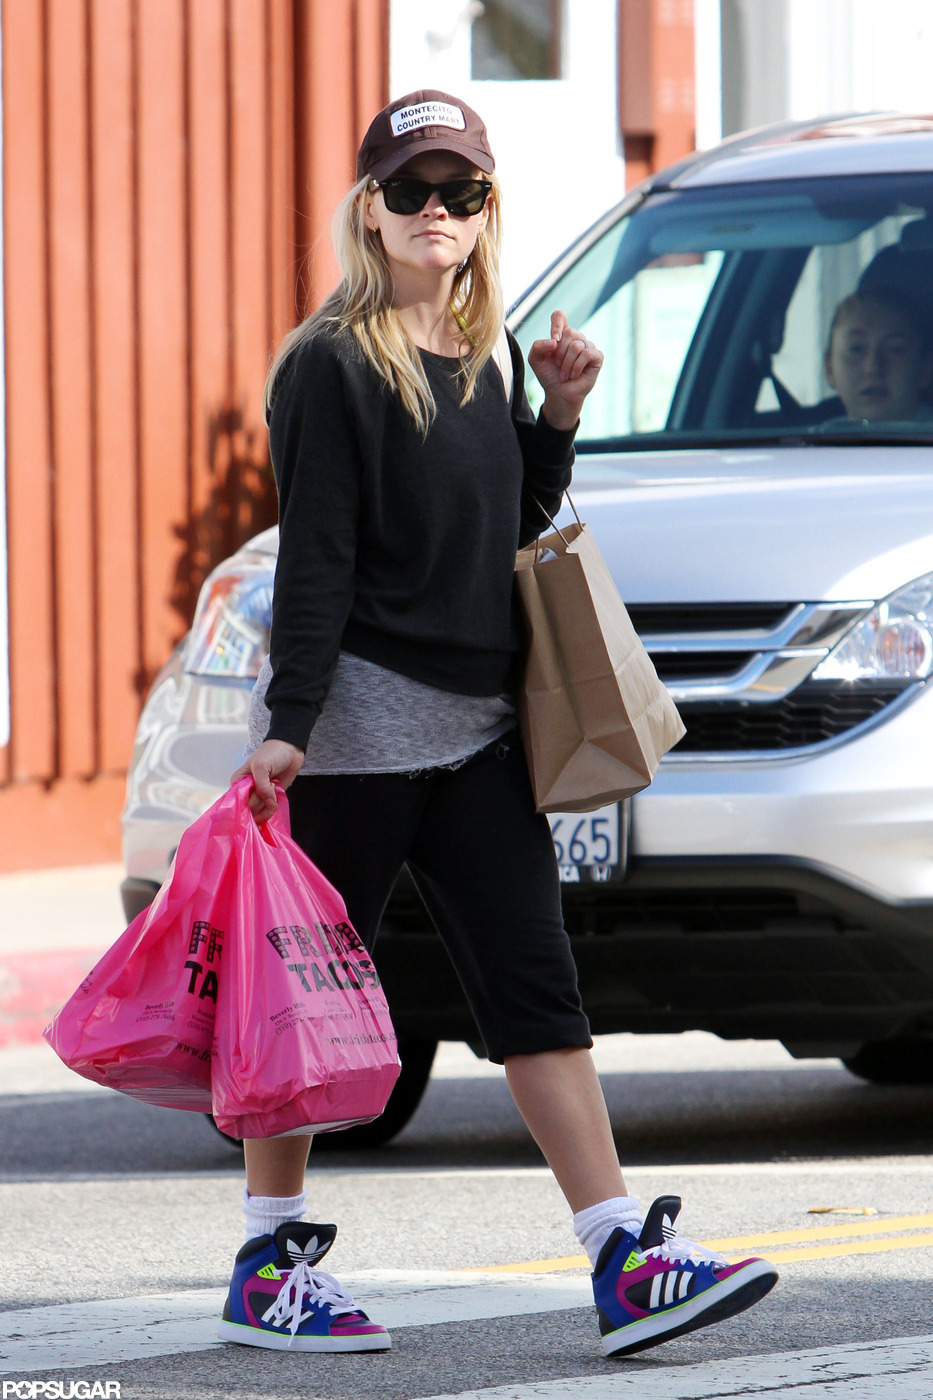 Reese Witherspoon Opts For Takeout Amid a Busy Award Show Night